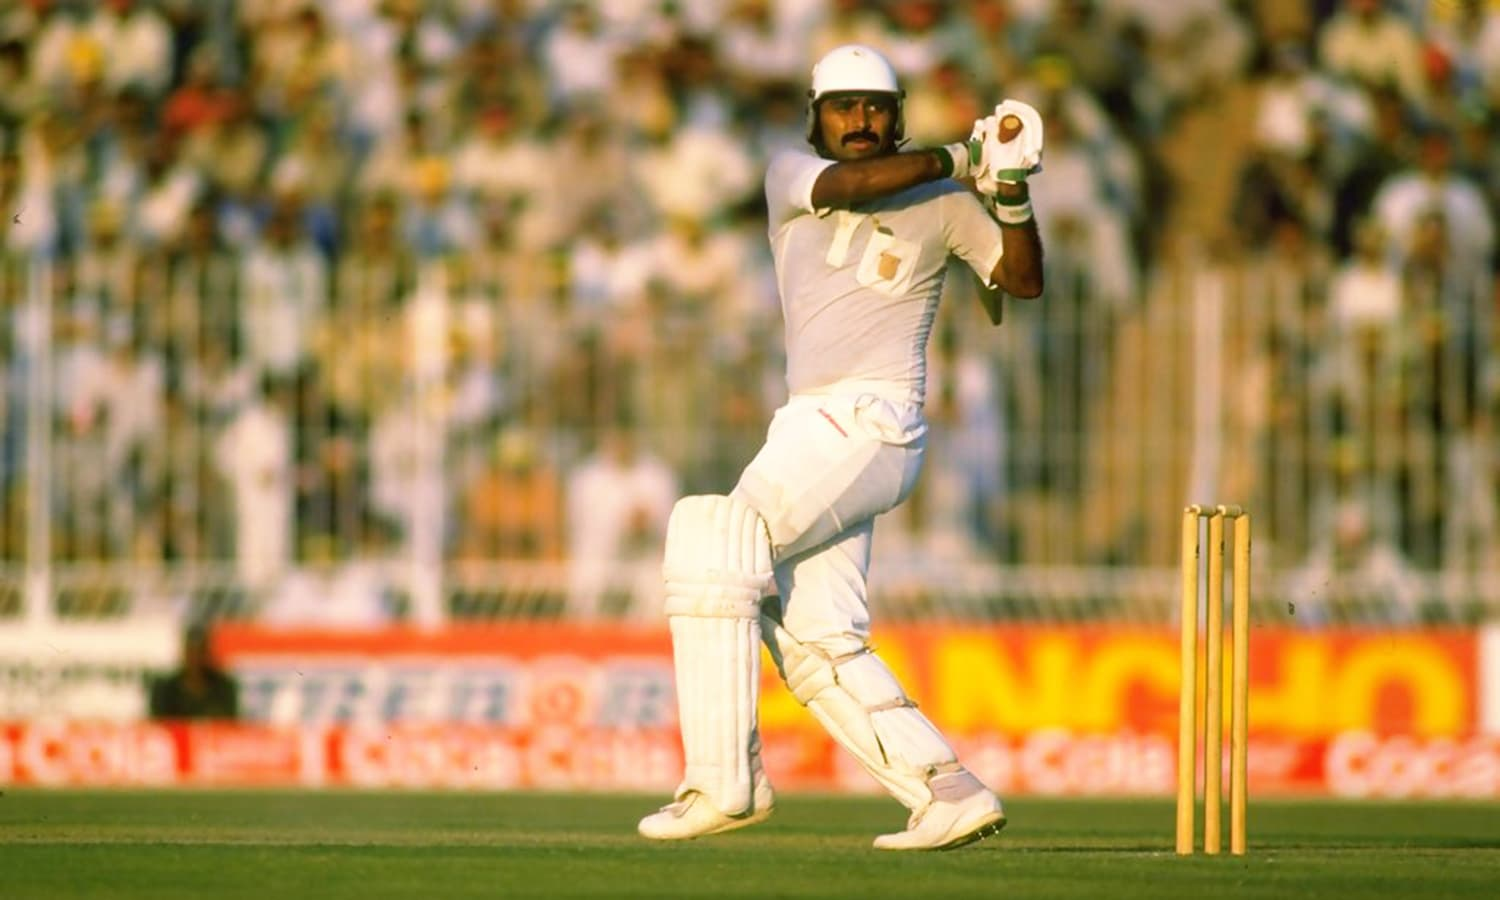 1987: A packed house watch's Pakistan vice-captain Javed Miandad try to pull his team out of trouble against Australia during the 1987 World Cup semi-final at Gaddafi Stadium. Australia won the game. (Pic: NDTV Sports)